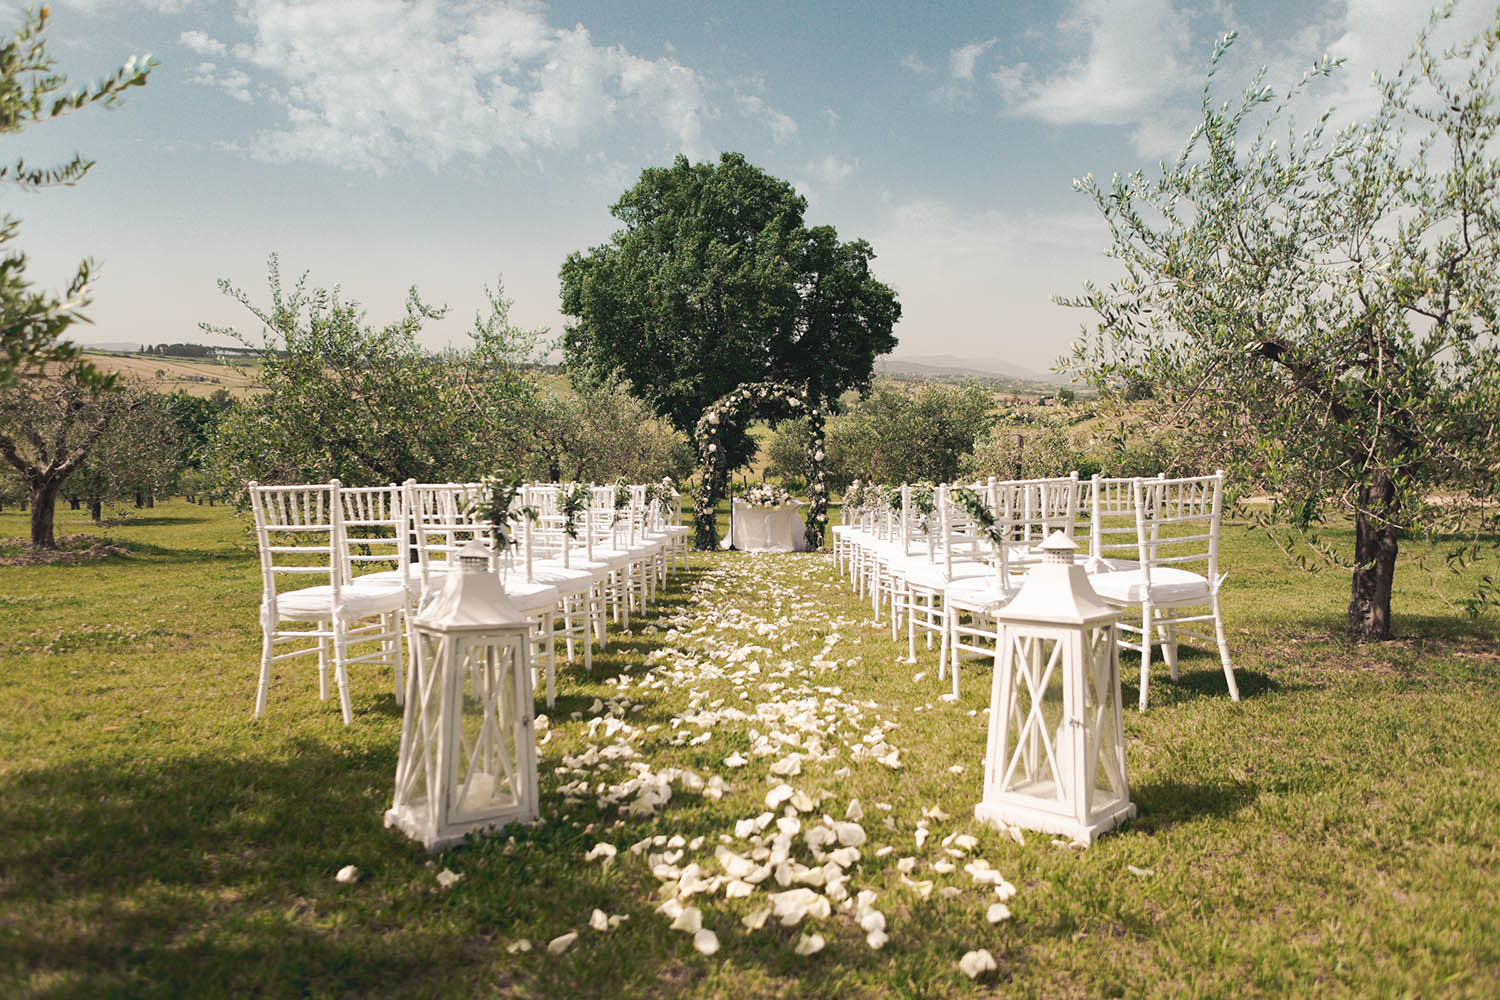 The wedding ceremony - Relais Tenuta dei Mori